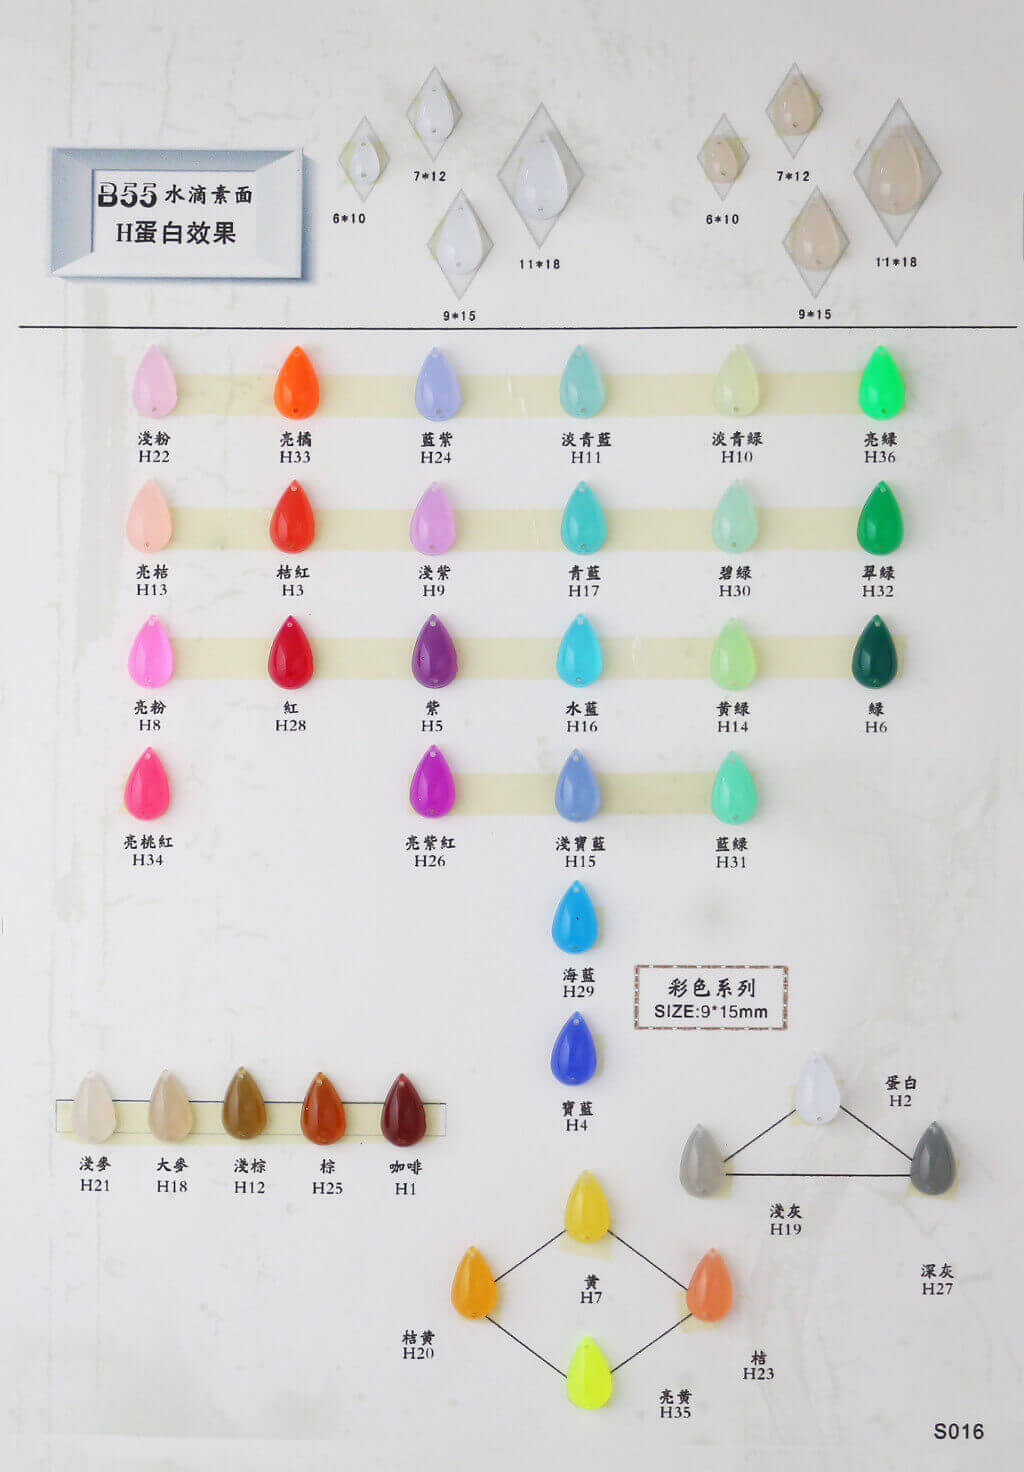 sew on stones catalogue-SB55-H